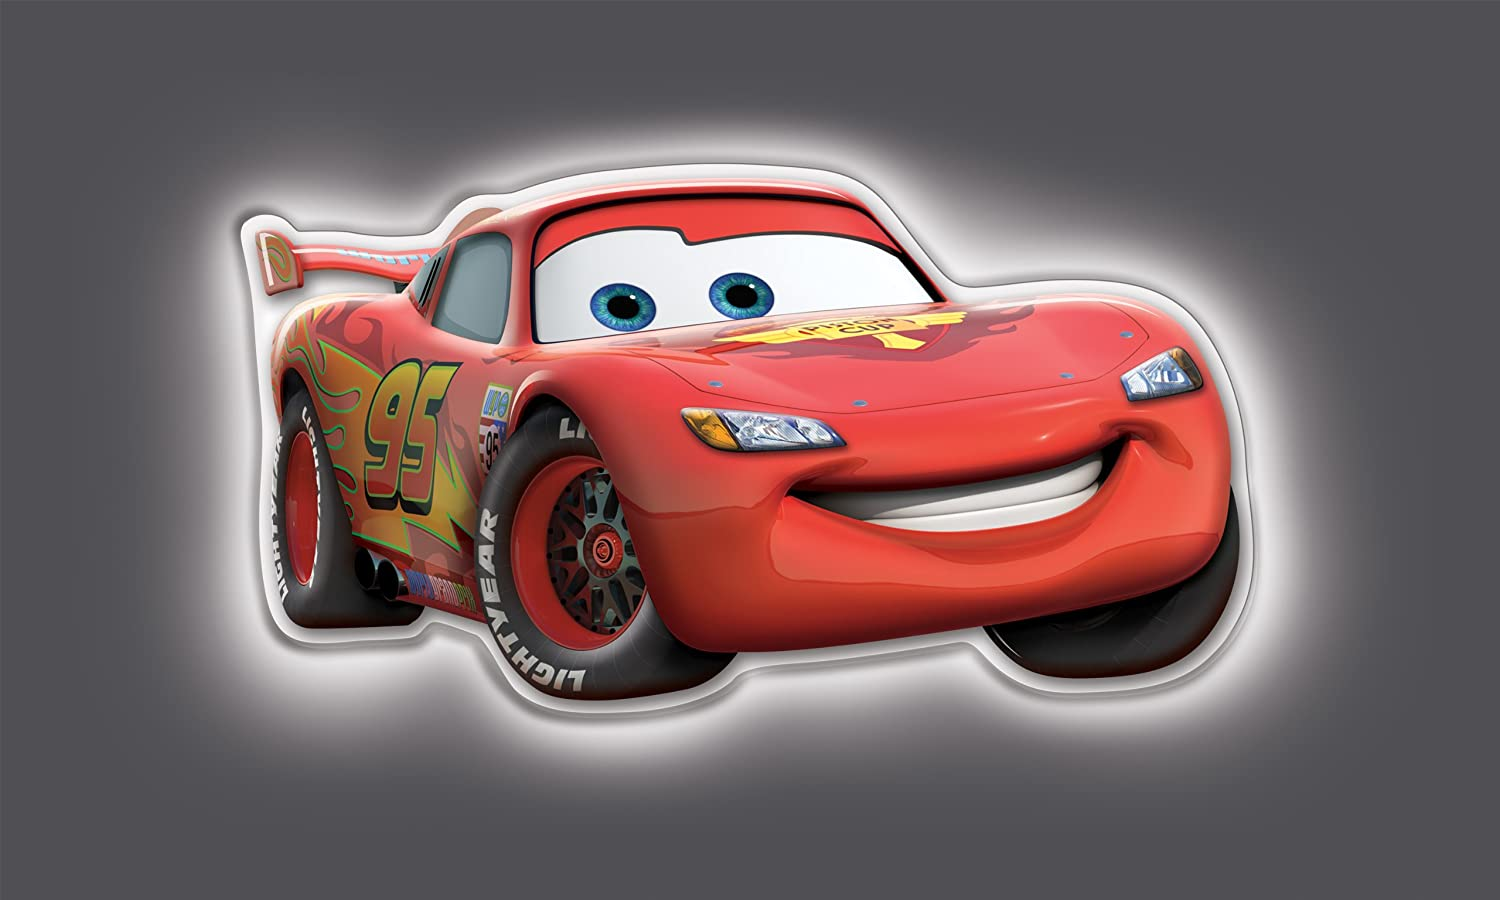 Amazon.com Uncle Milton - Wall Friends - Lightning McQueen Toys u0026 Games & Amazon.com: Uncle Milton - Wall Friends - Lightning McQueen: Toys ... azcodes.com